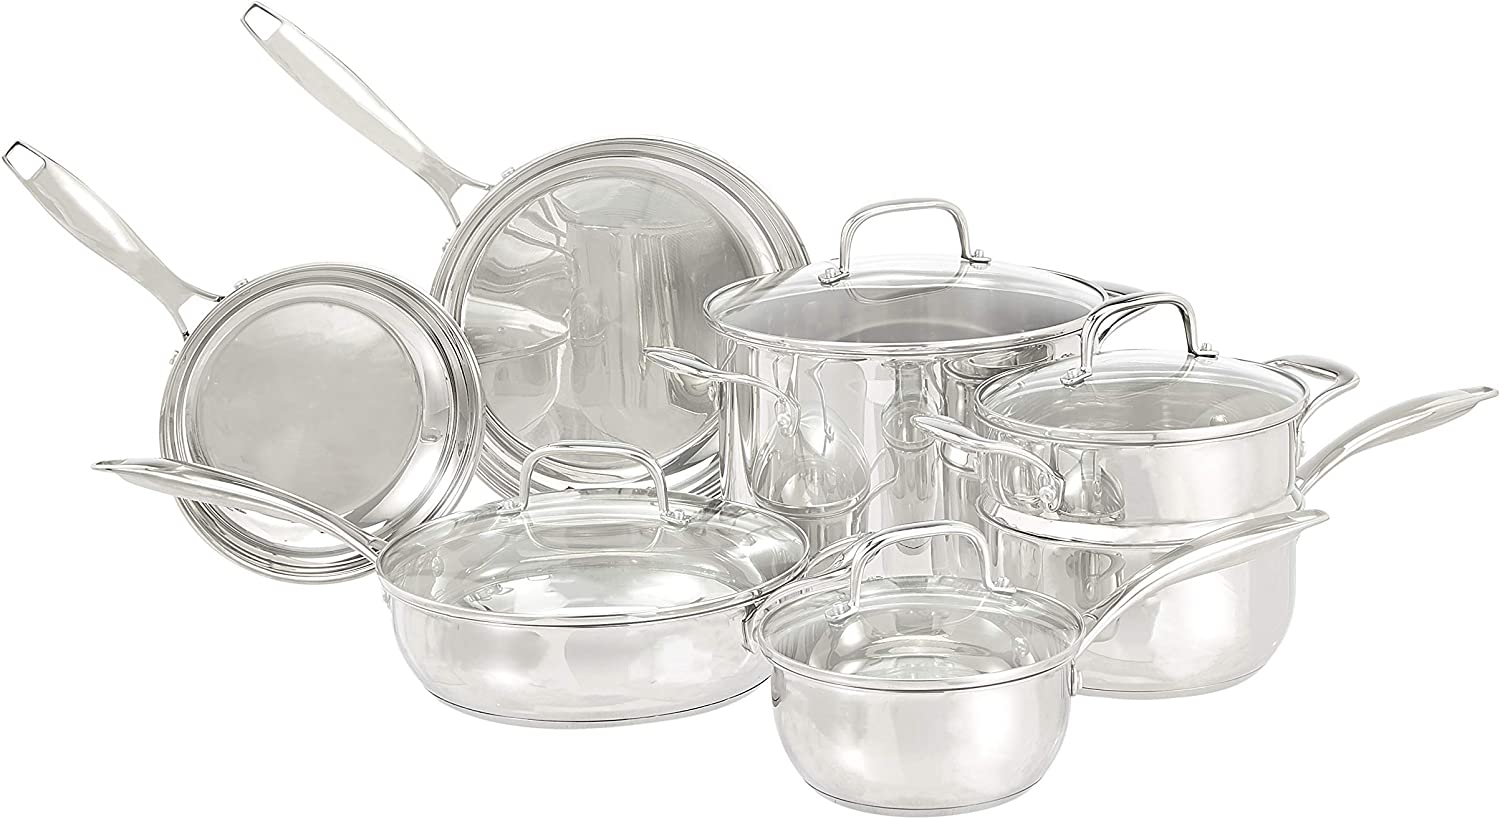 AmazonBasics Stainless Steel 11-Piece Cookware Set – Pots and Pans